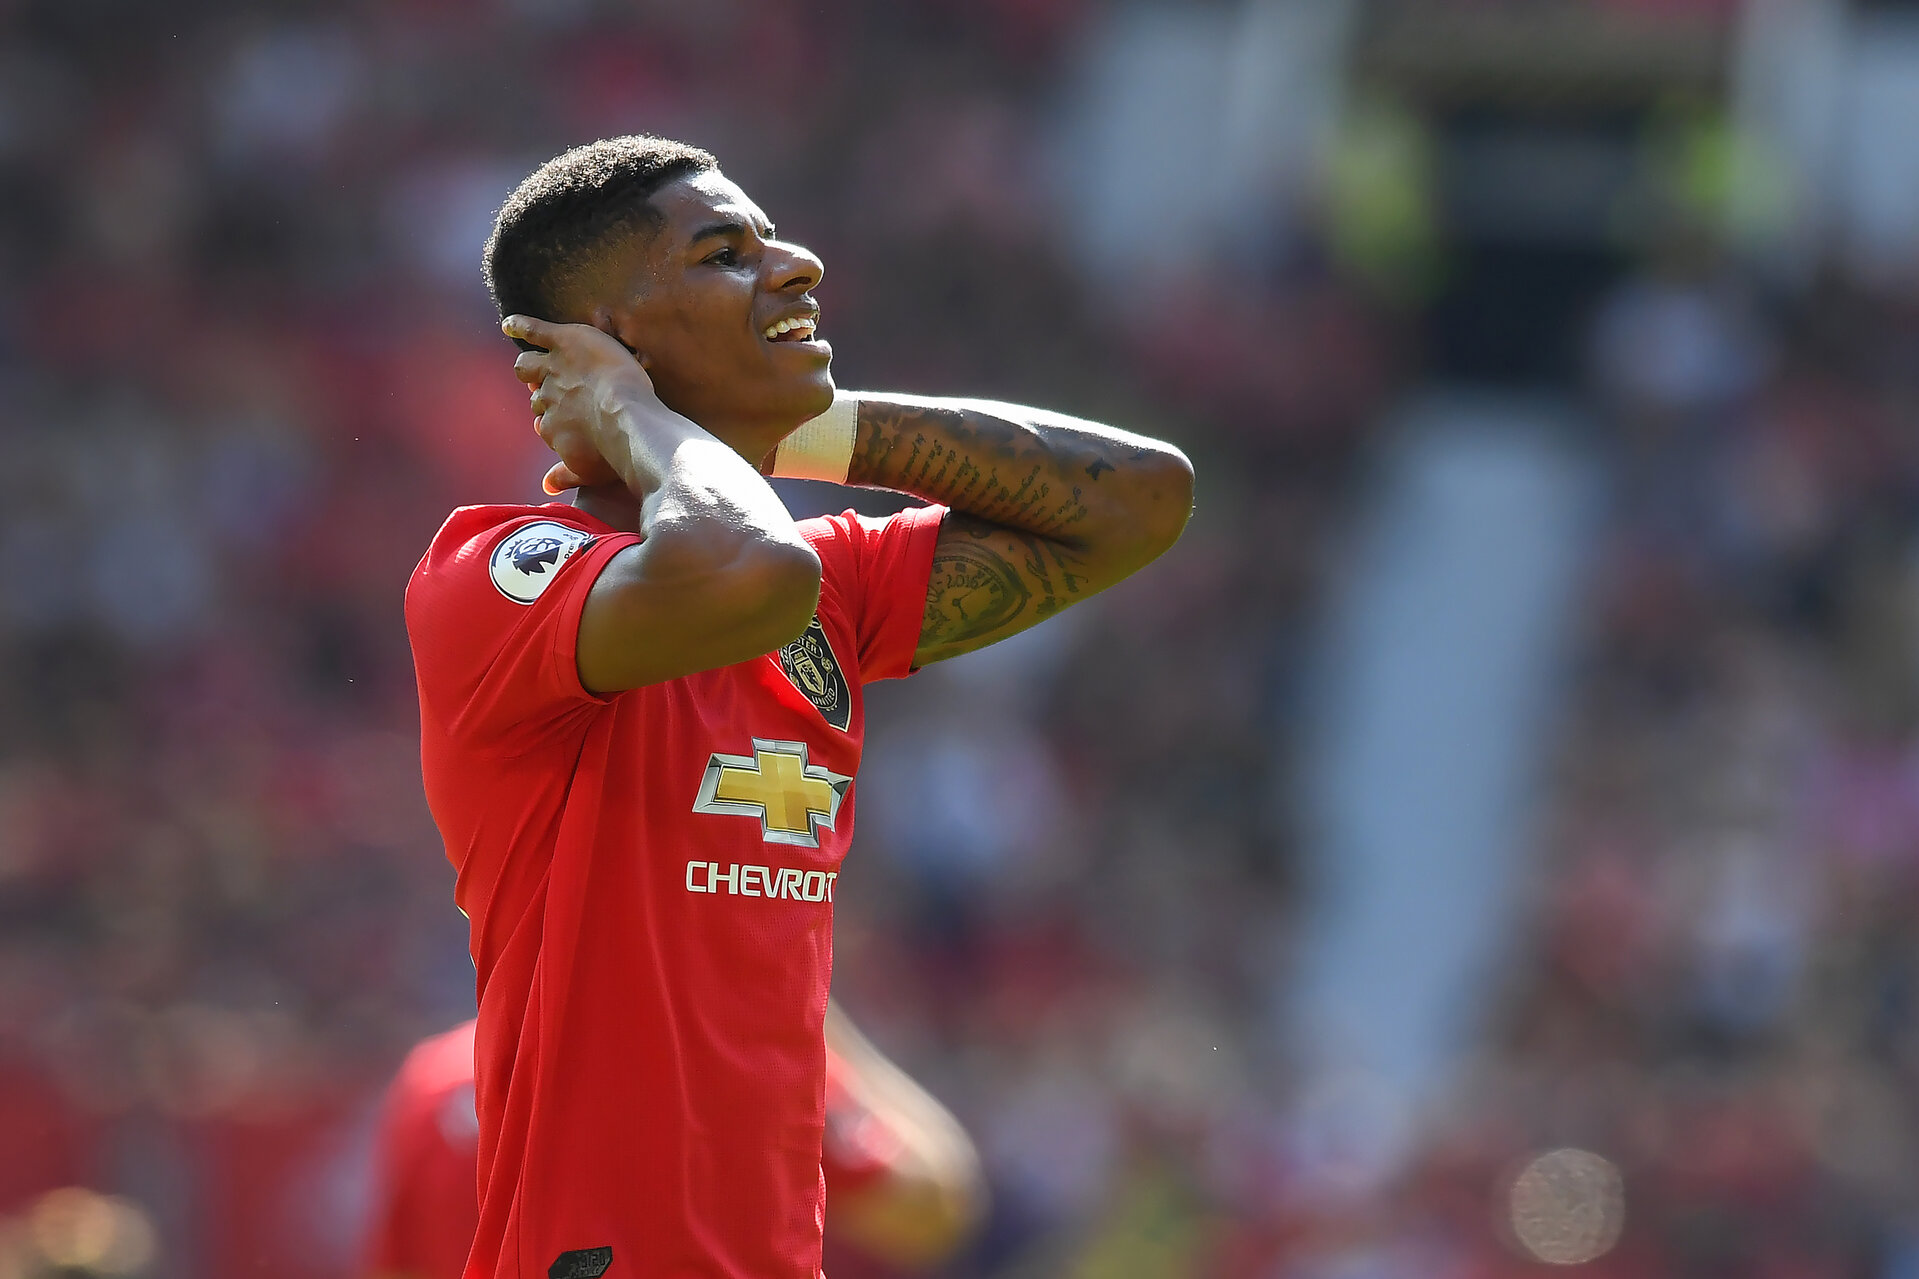 MANCHESTER, ENGLAND - AUGUST 24: Marcus Rashford looks dejected during the Premier League match between Manchester United and Crystal Palace at Old Trafford on August 24, 2019 in Manchester, United Kingdom. (Photo by Michael Regan/Getty Images)